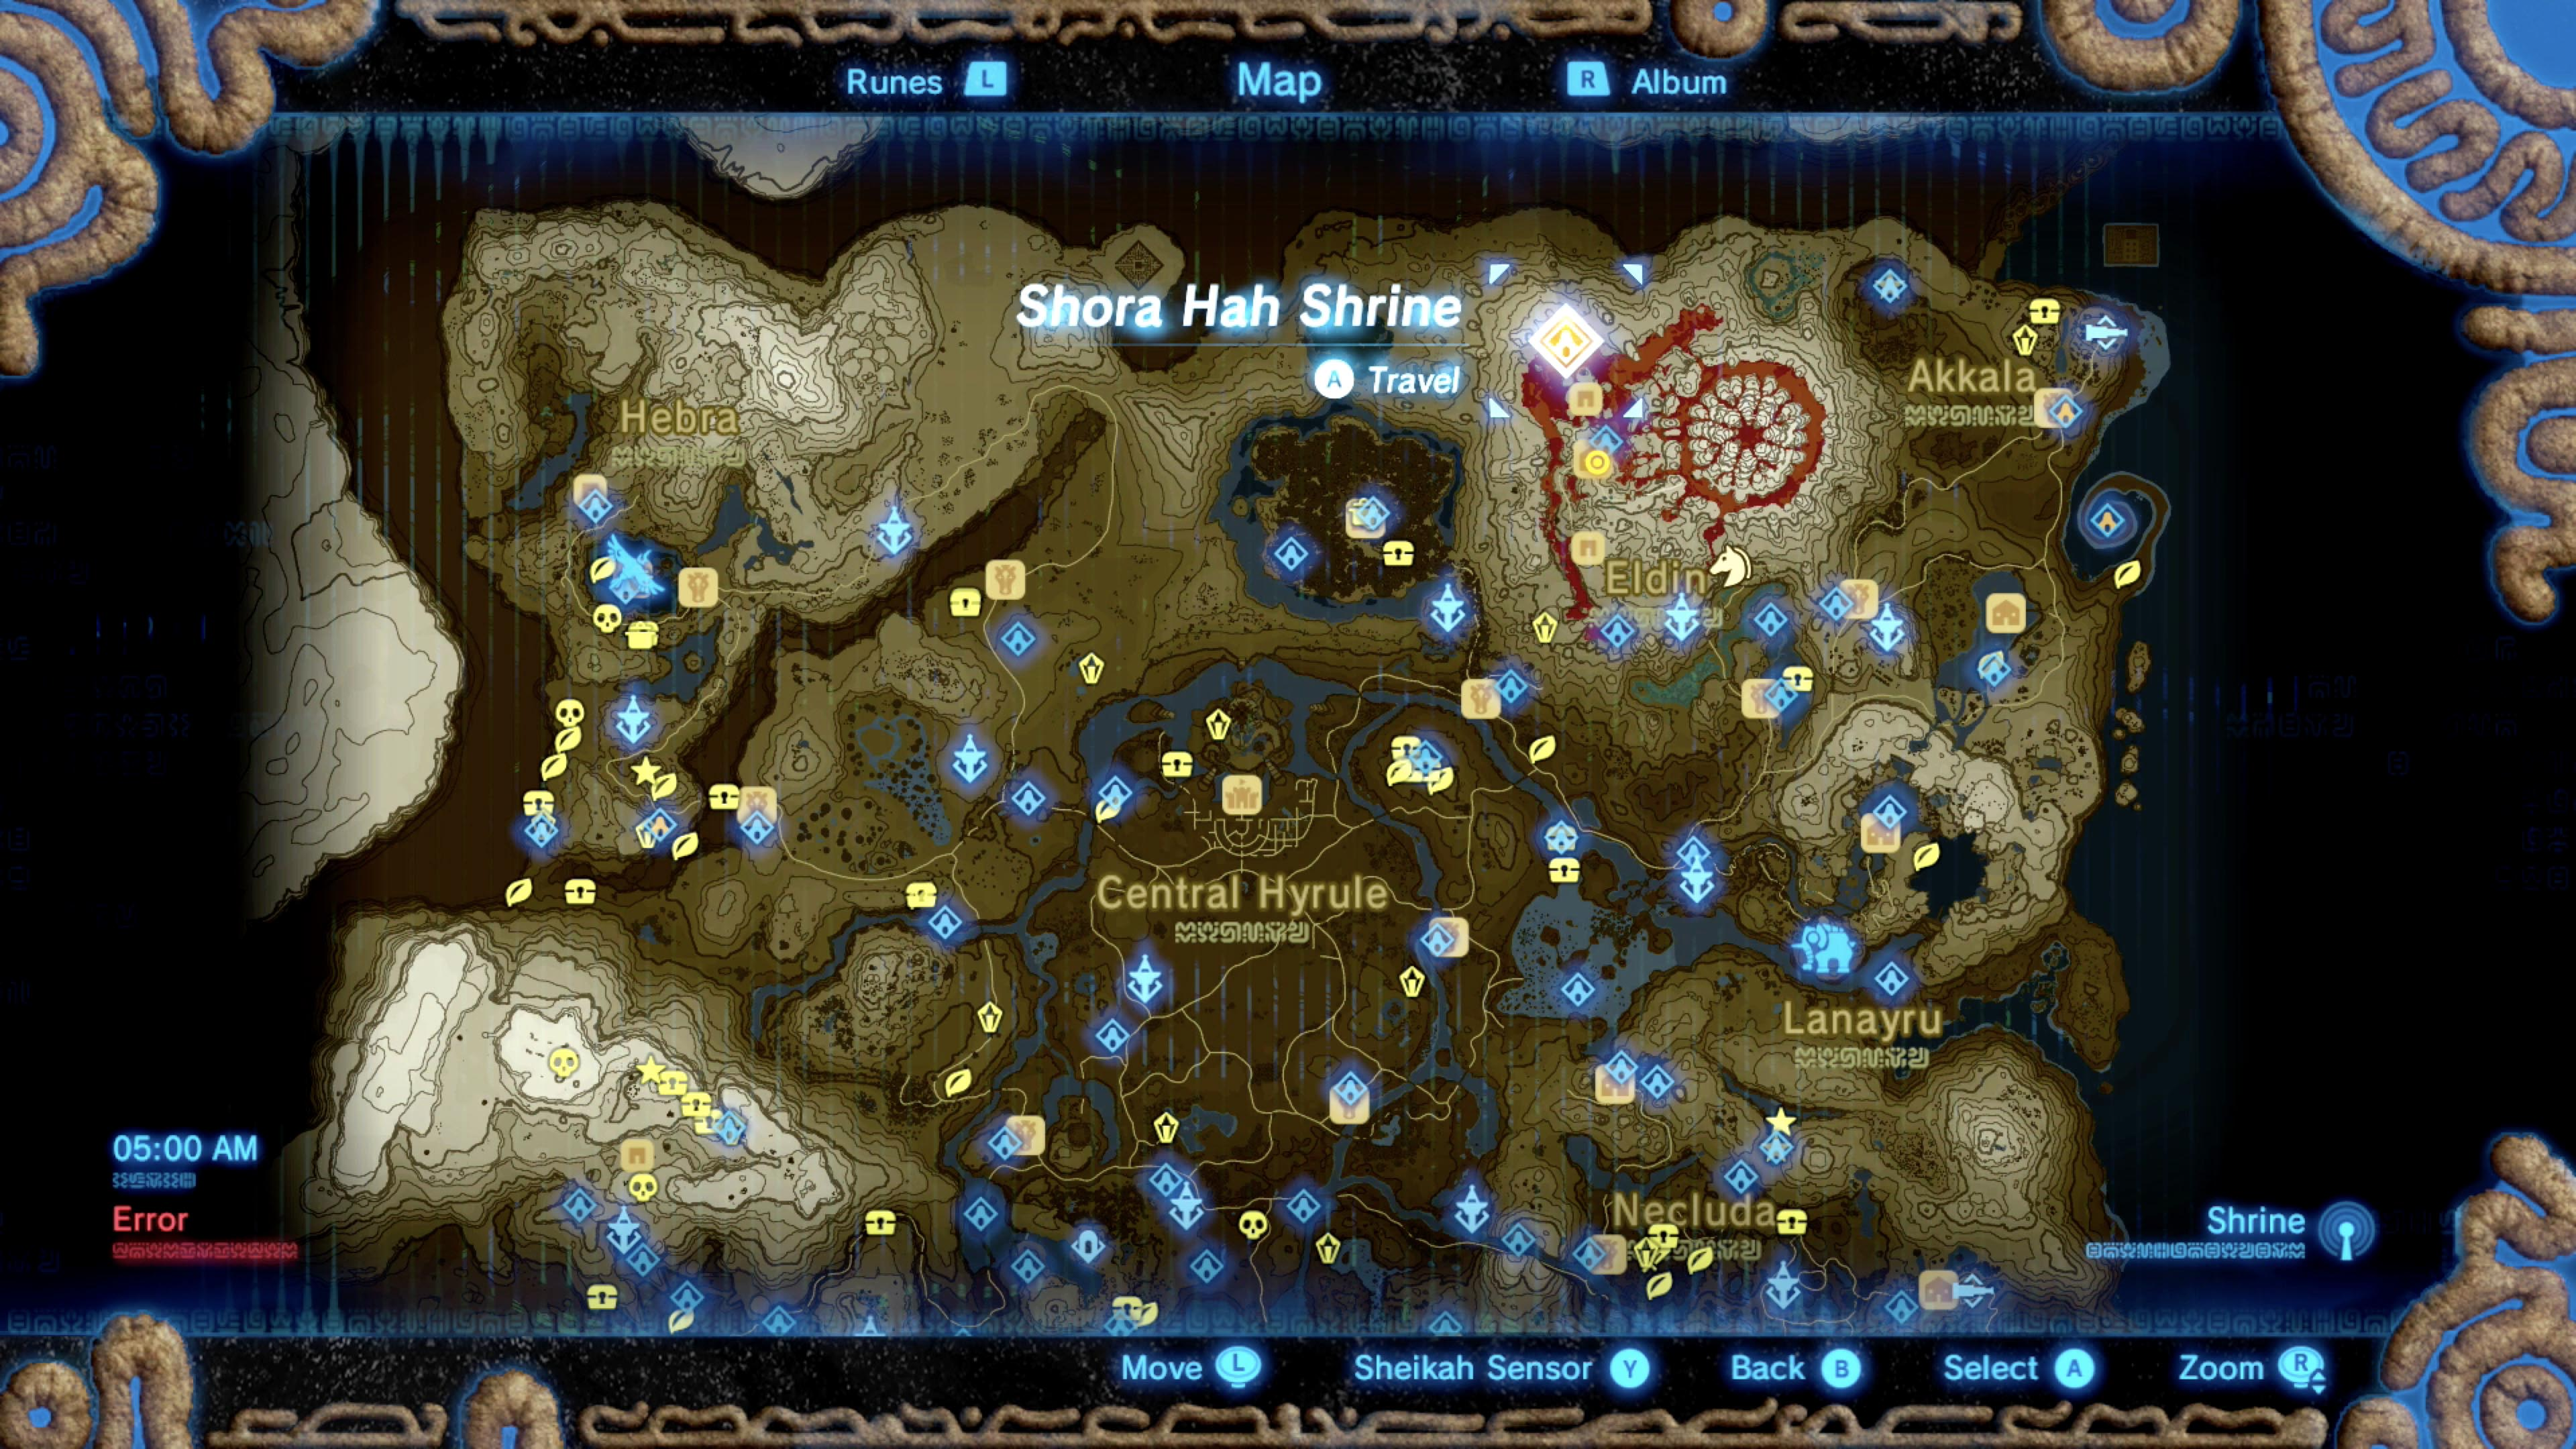 How to find Shora Hah shrine